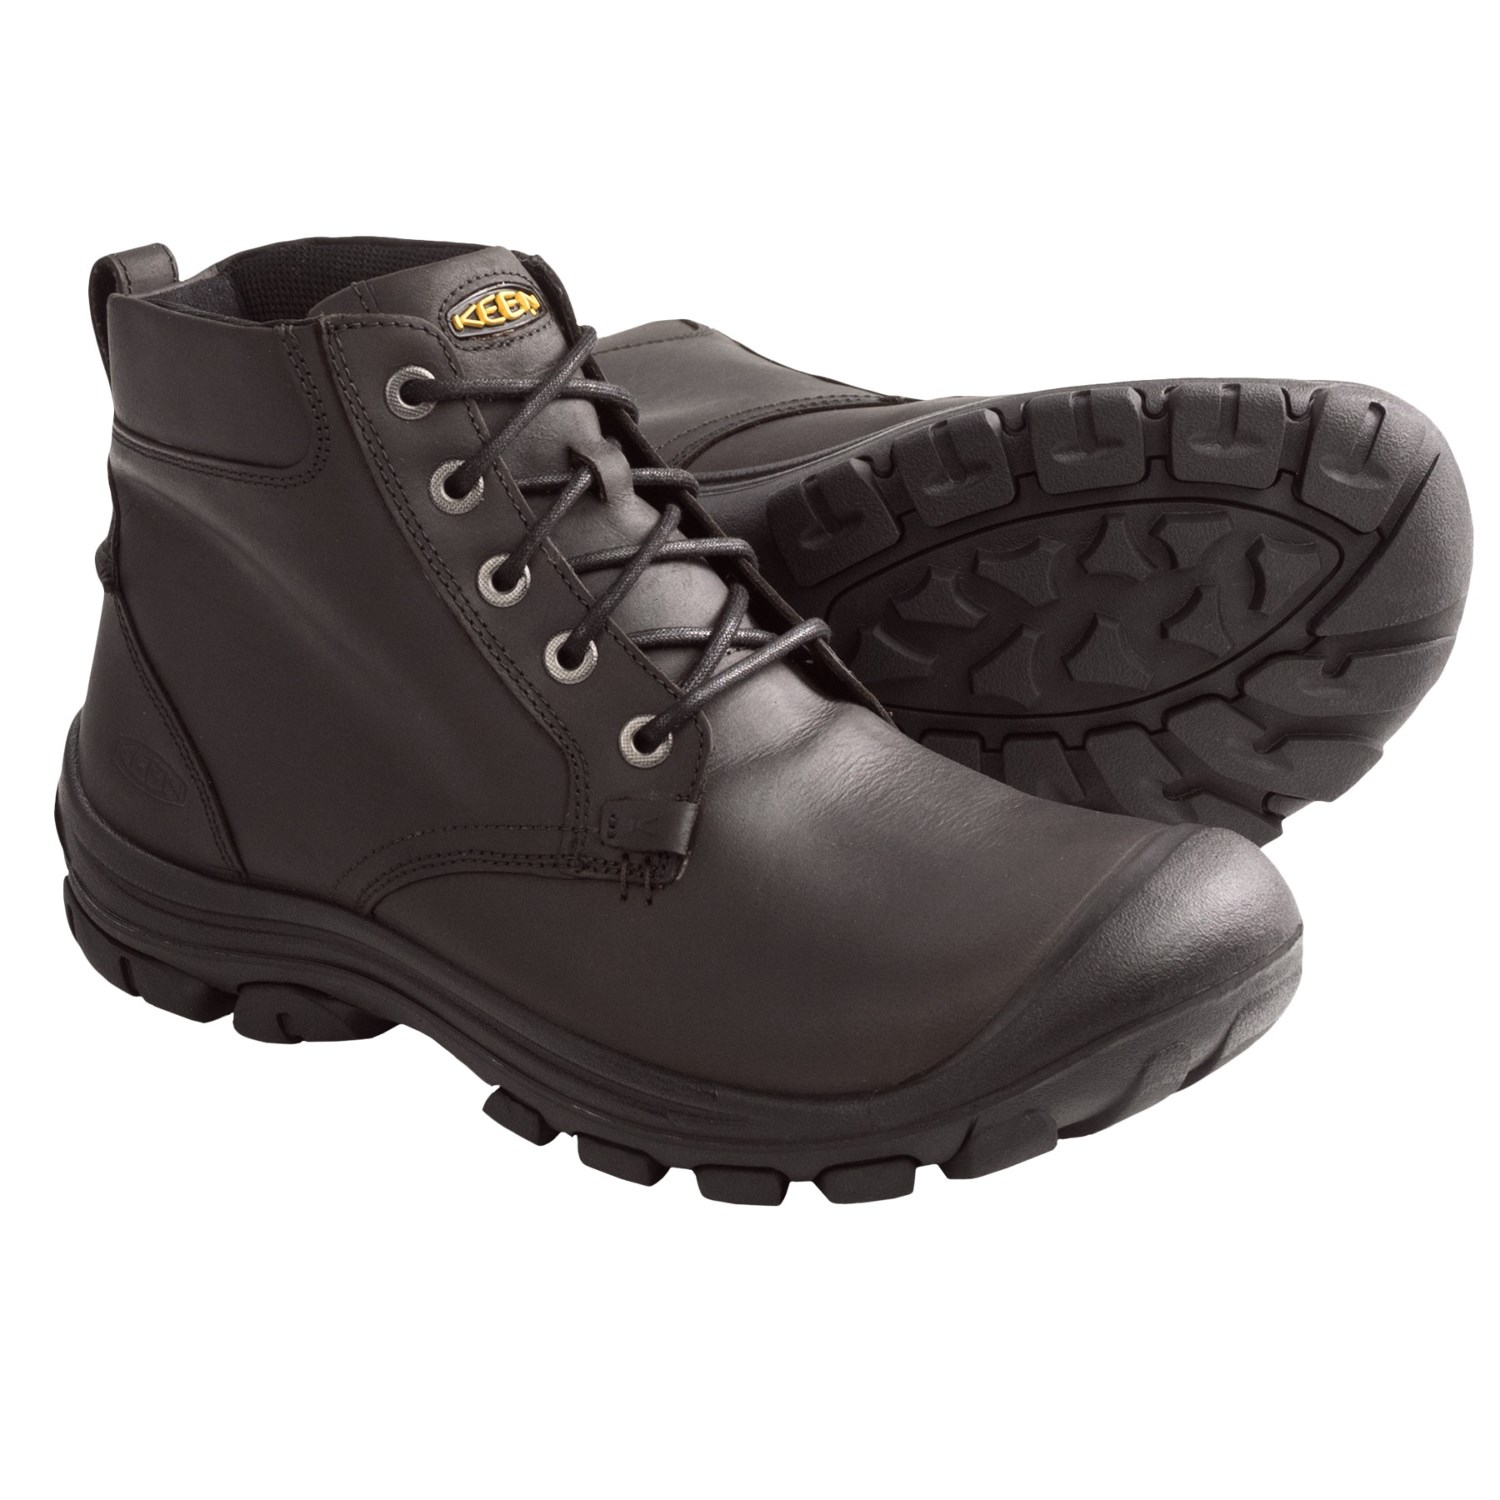 keen boots for outdoor sandals